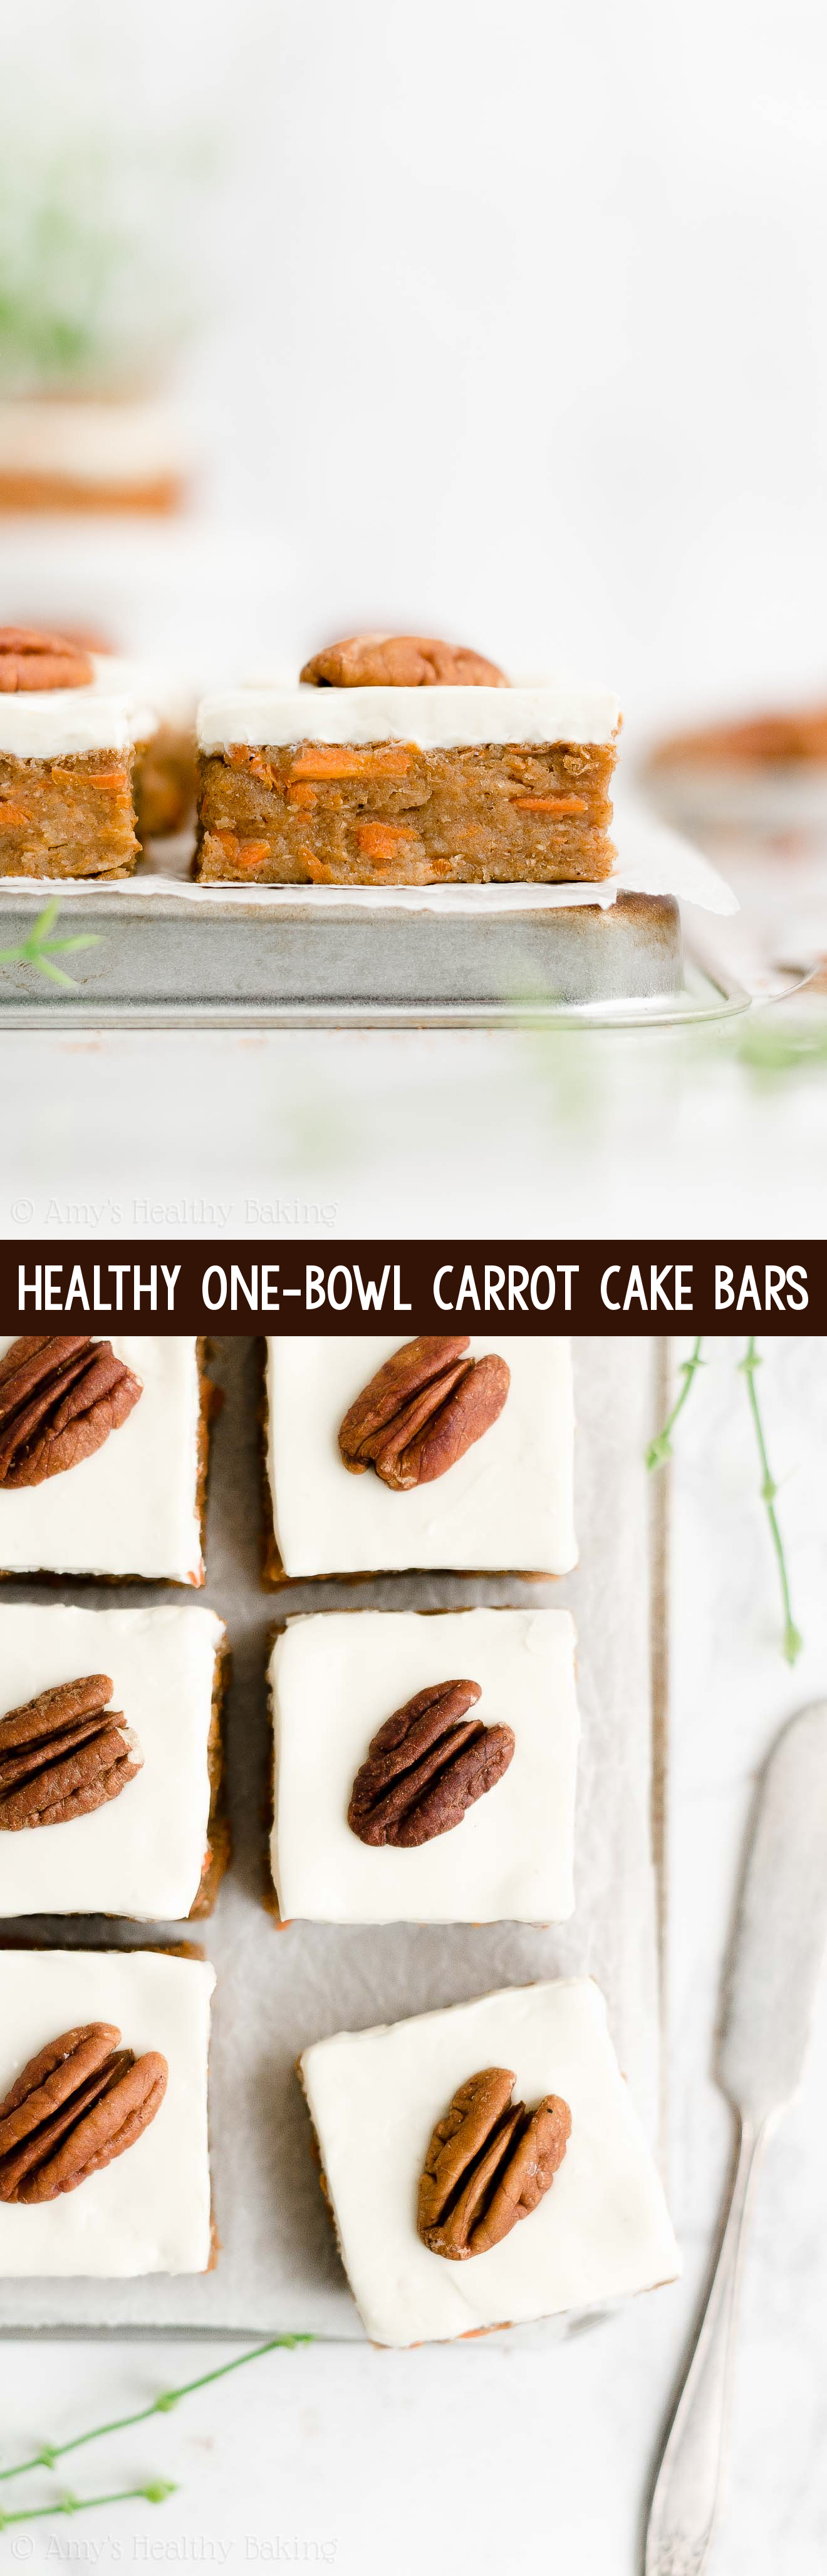 Best Easy Healthy Low Calorie Sugar Free Carrot Cake Bars with Cream Cheese Frosting